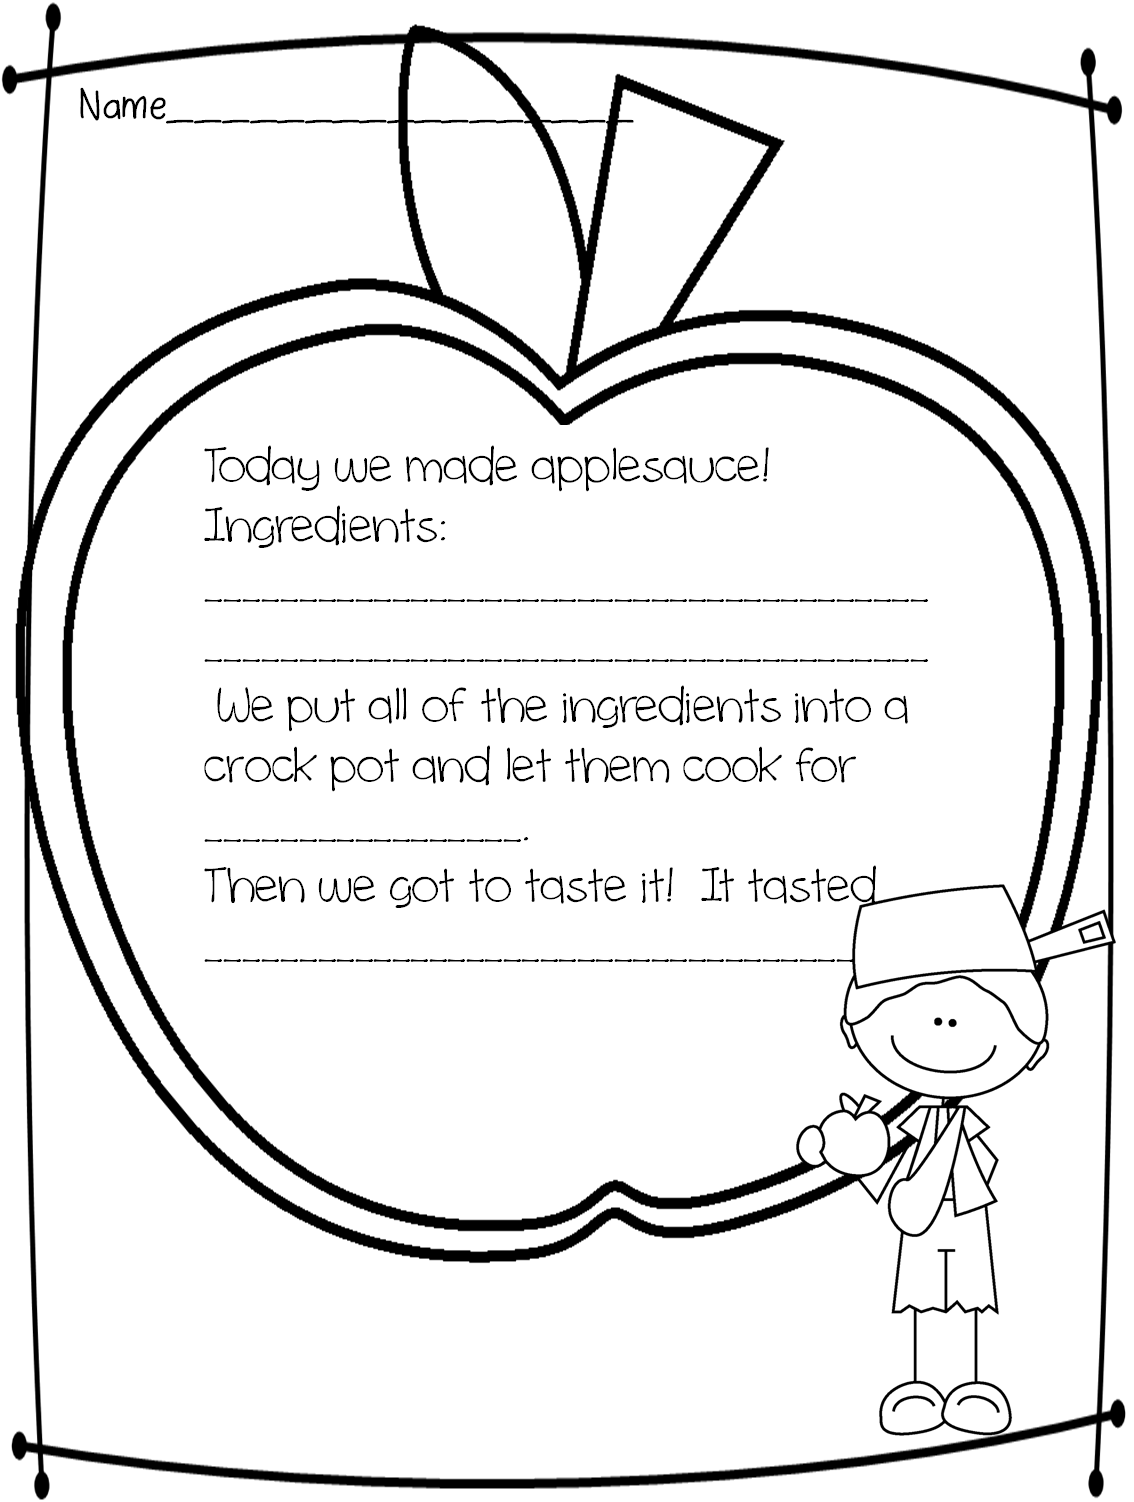 Johnny Appleseed Applesauce Recipe 1 134 1 502